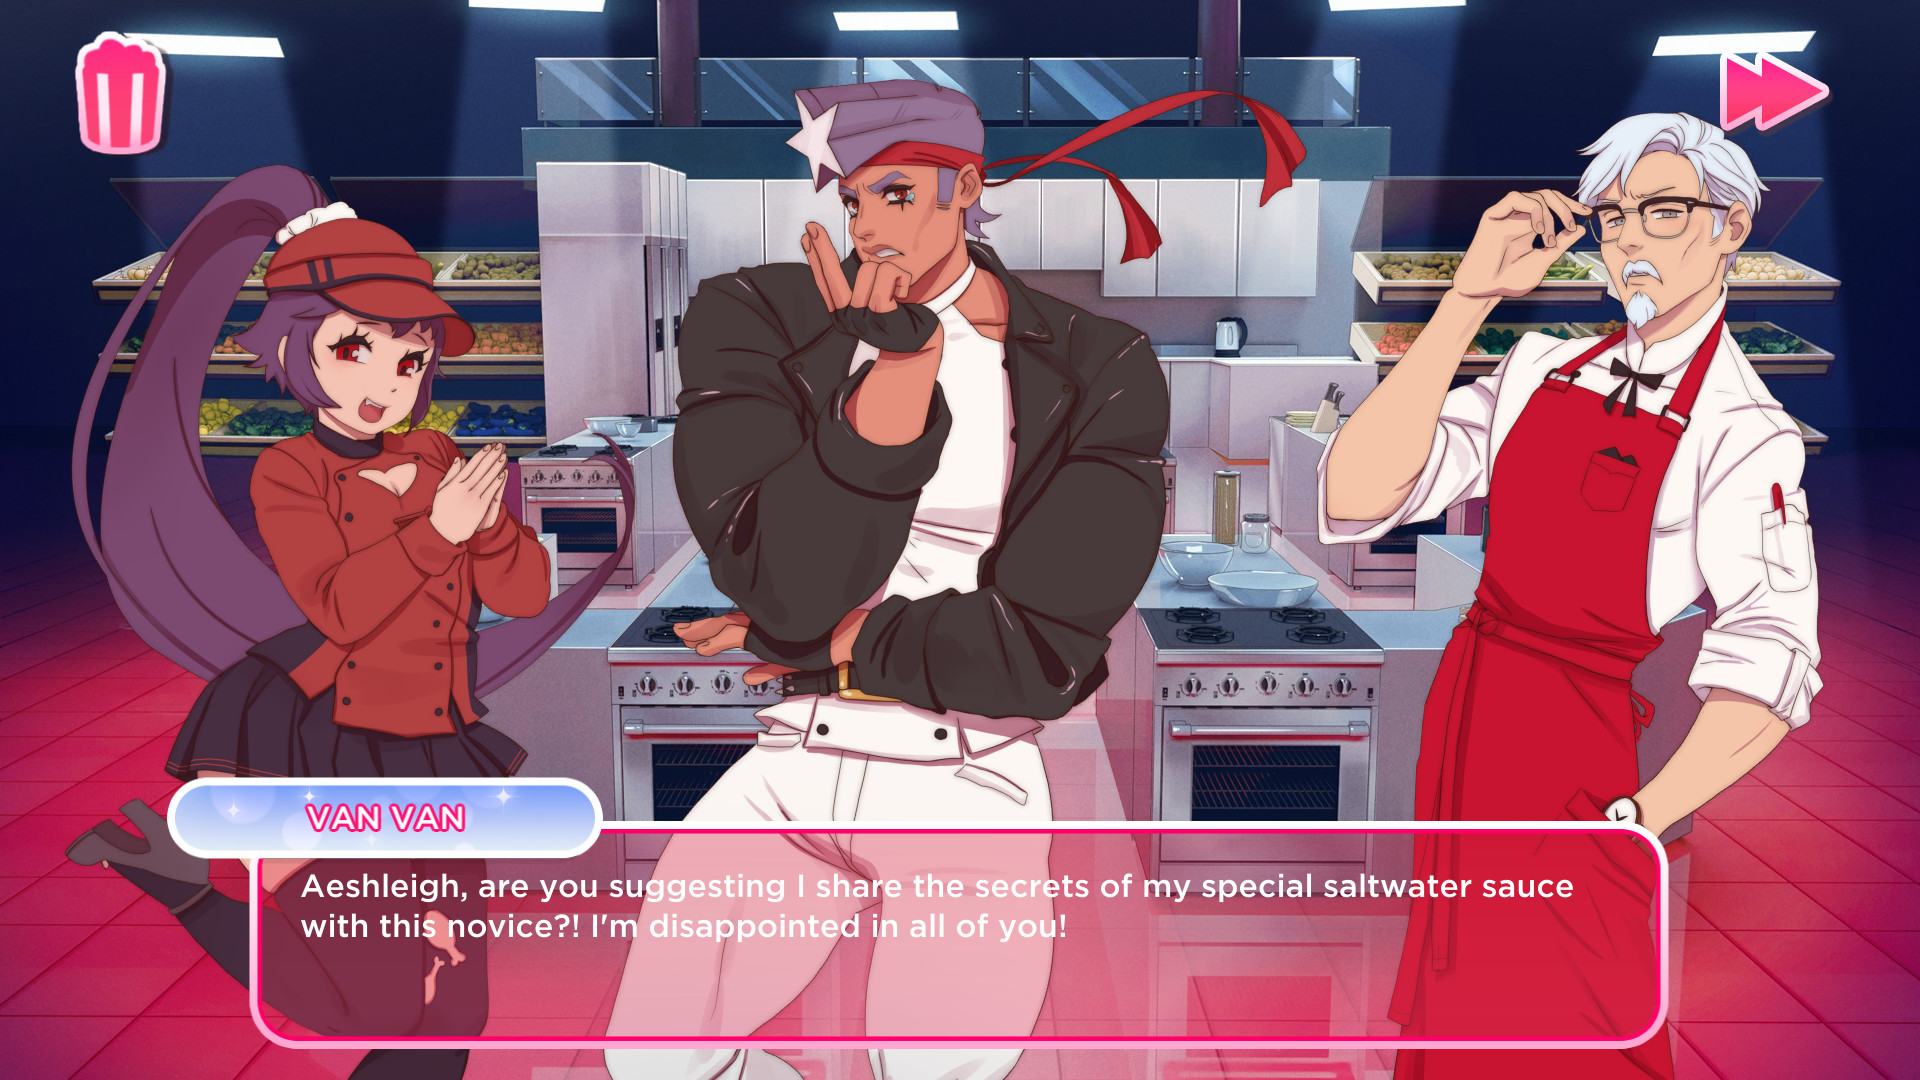 Dating Sims Mobiilipelit